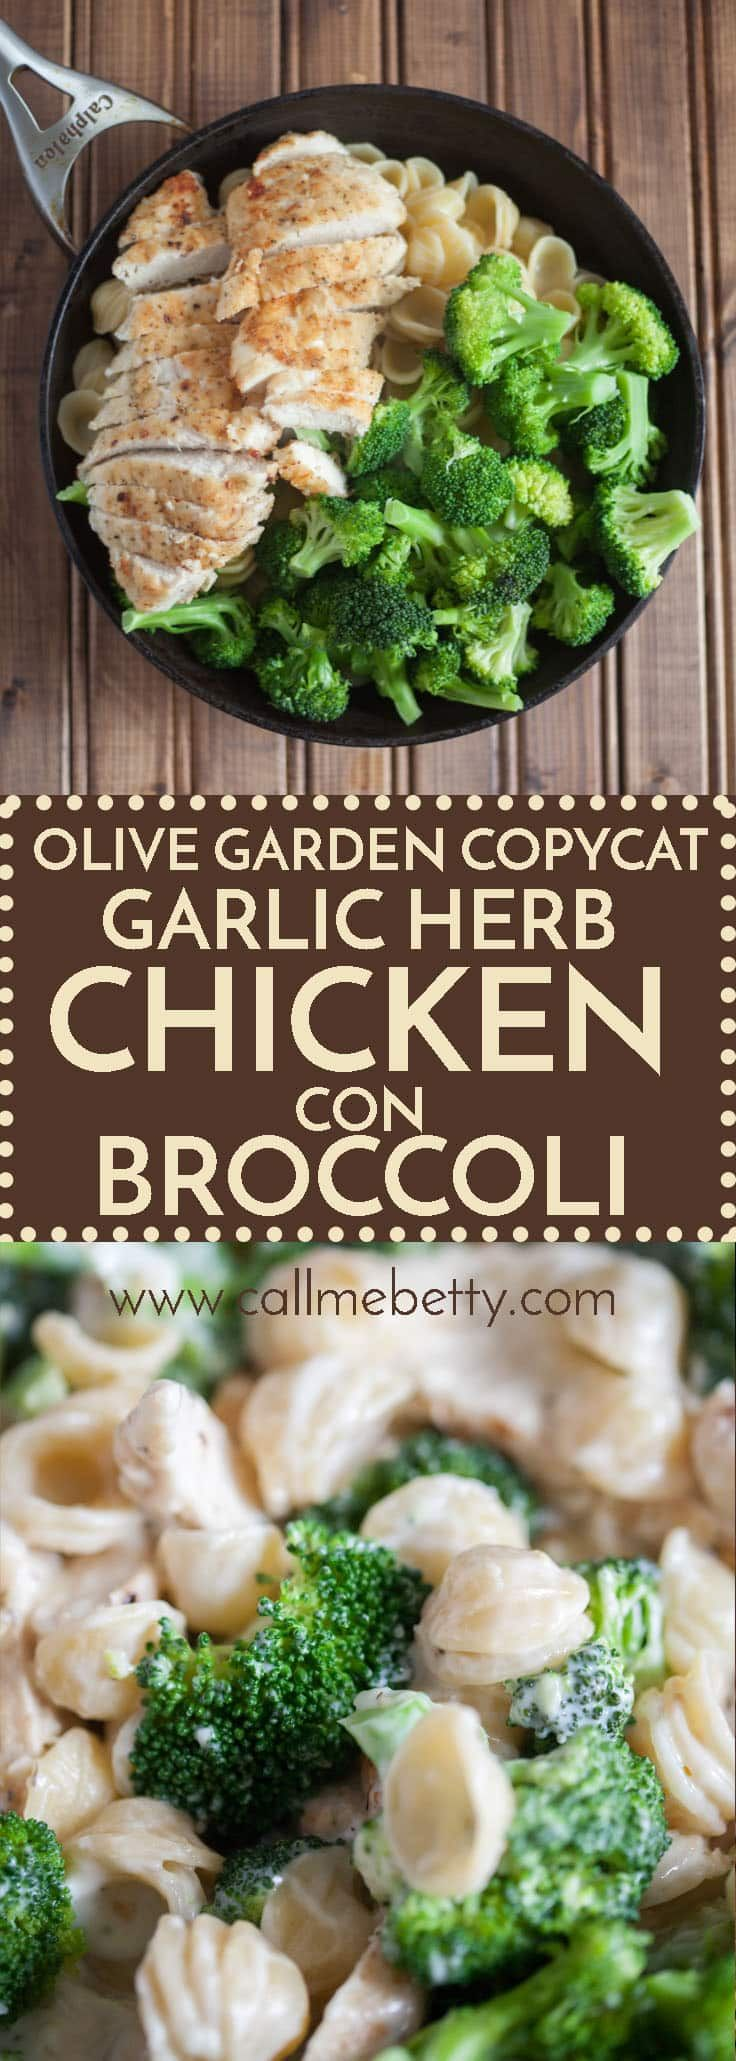 25 Best Olive Garden Recipes Ideas On Pinterest Olive Garden Copycat Recipes Olive Garden